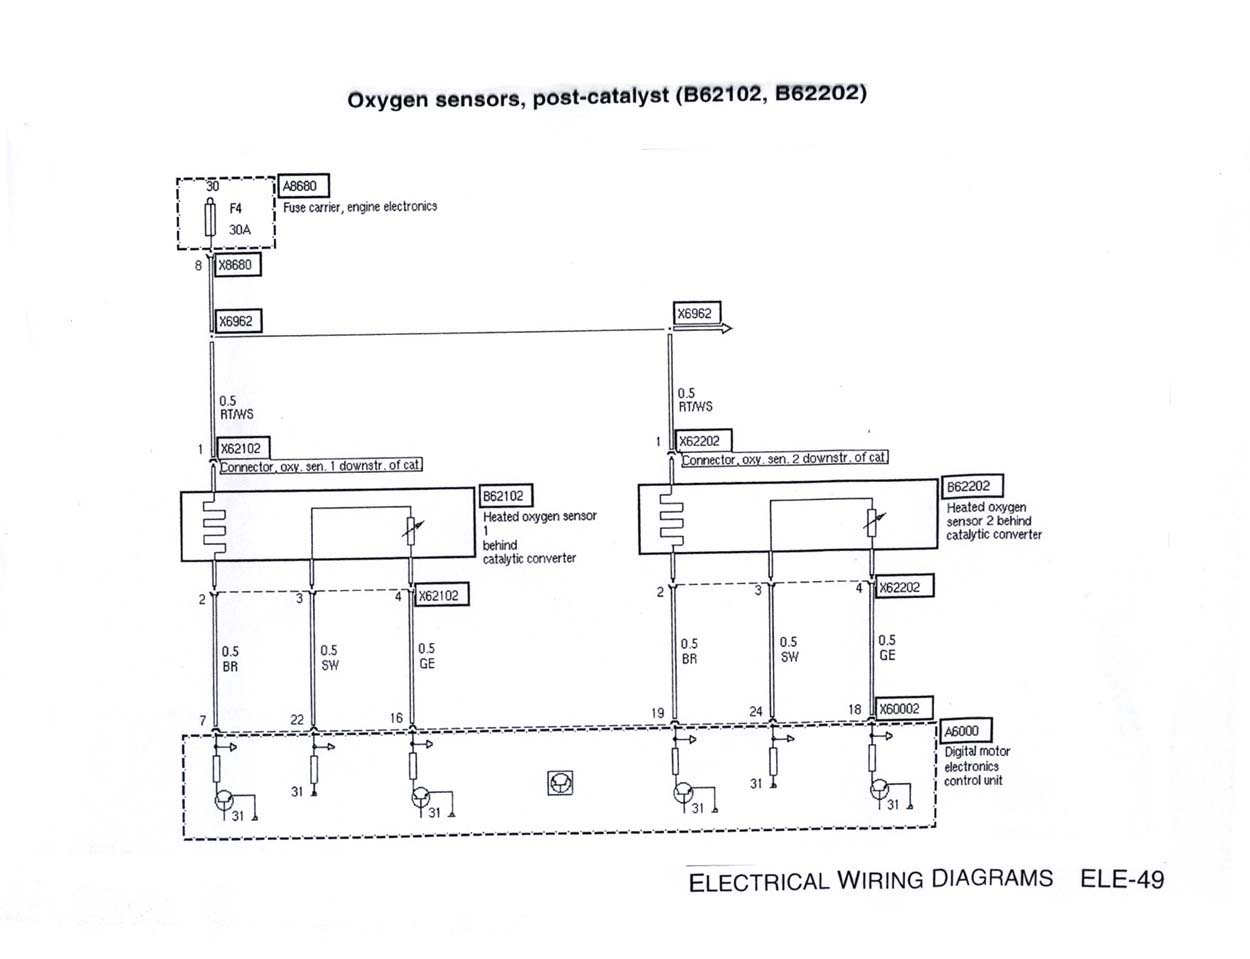 E46 NM Post-CAT 02 Sensor Schematic